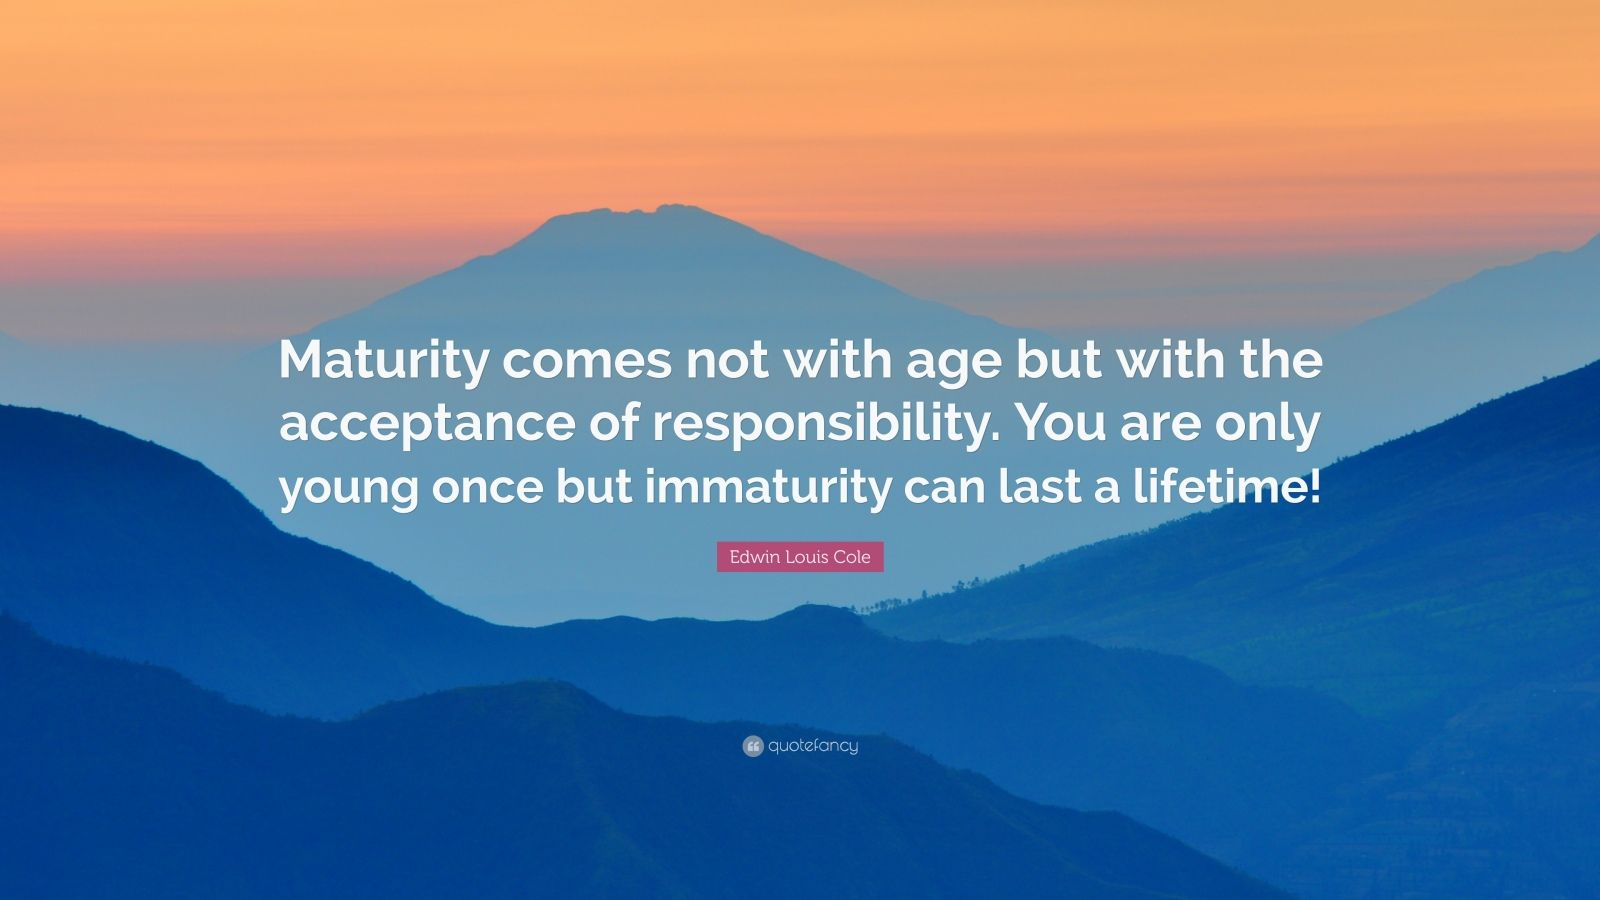 """Edwin Louis Cole Quote: """"Maturity comes not with age but with the acceptance of responsibility. You are only young once but immaturity can last a lifetime!"""""""